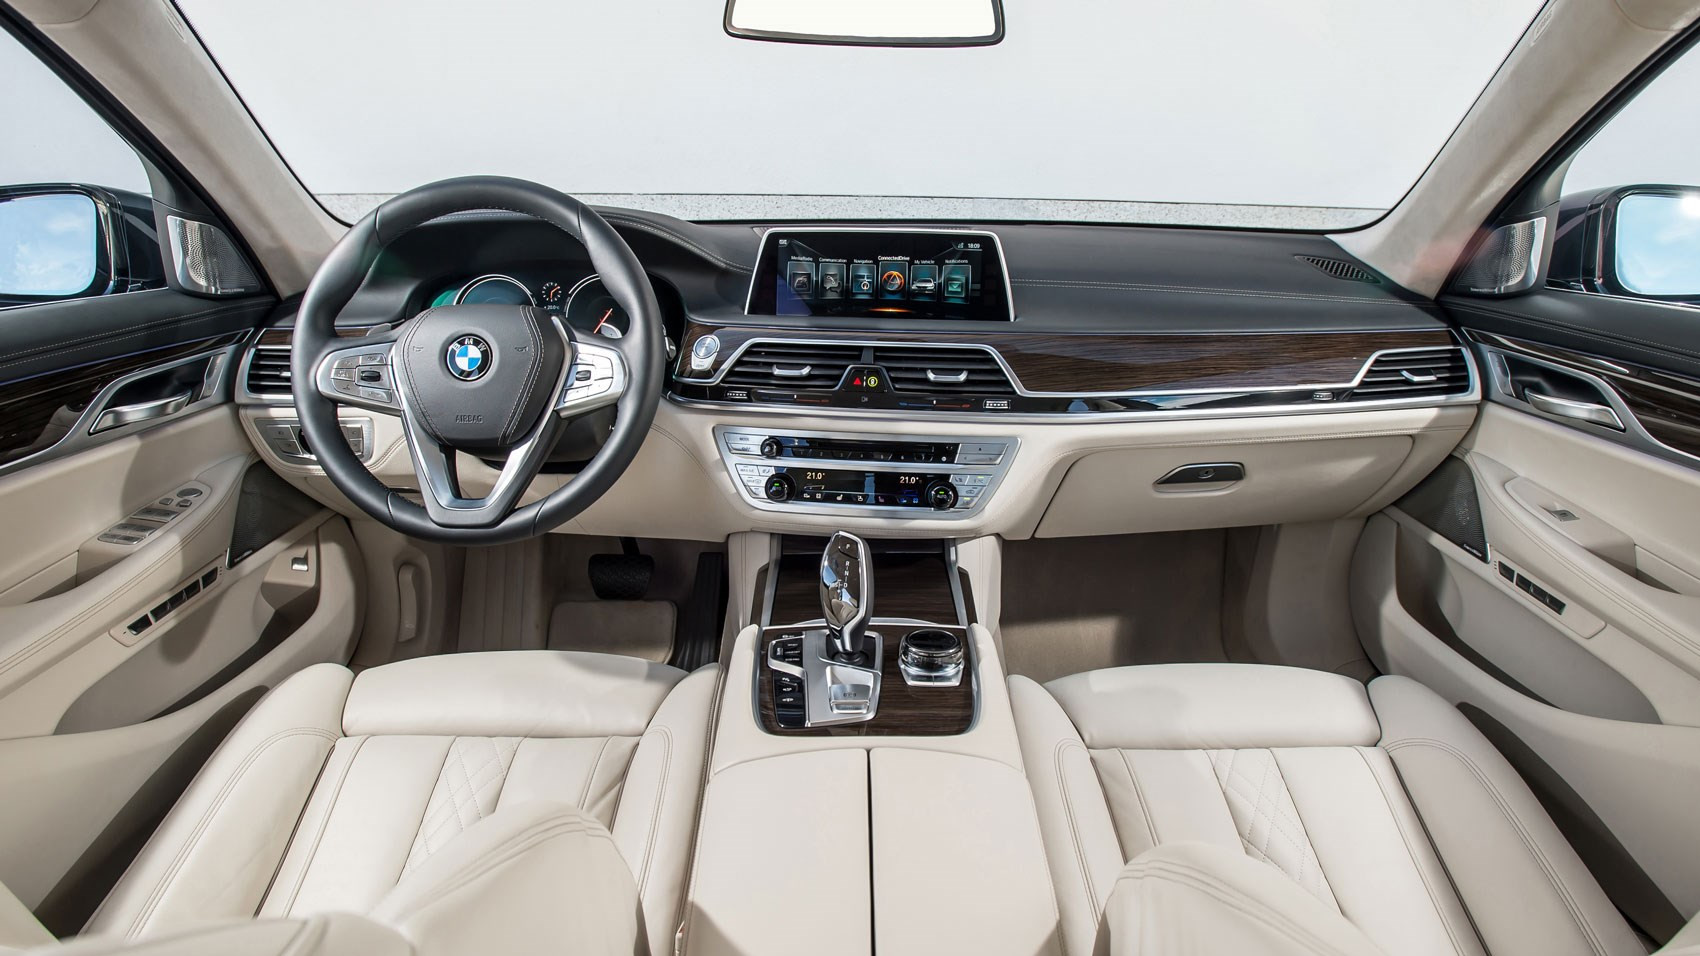 background - Ohnivé BMW 750i: nevkusné?